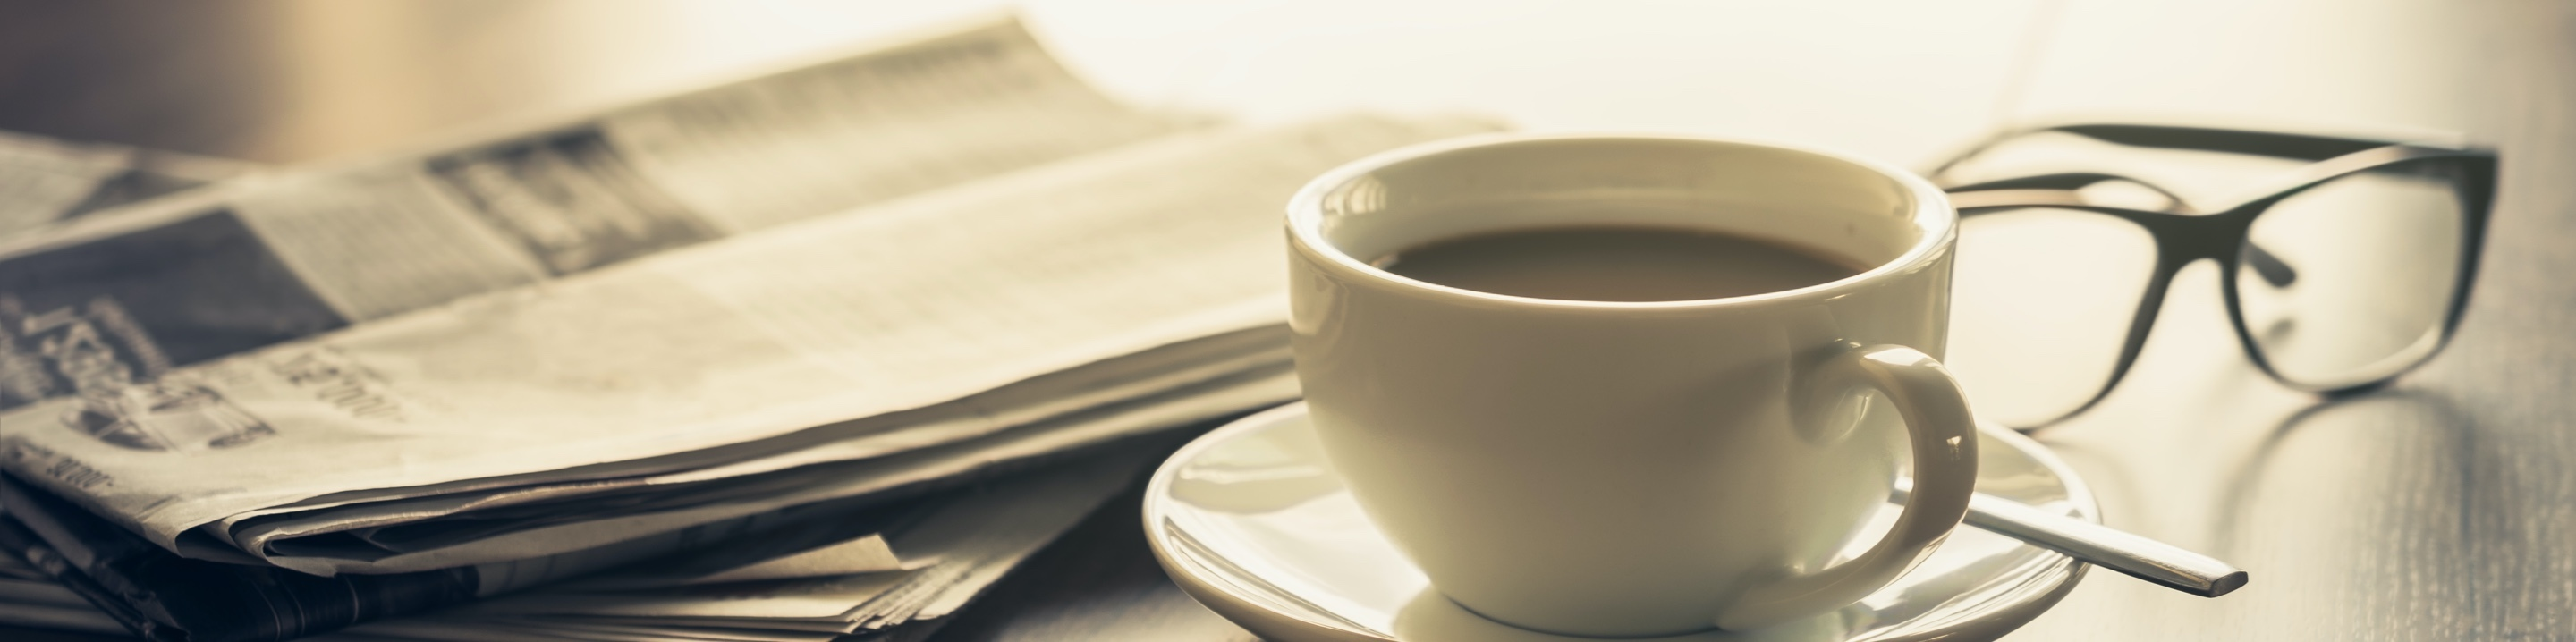 Cup of coffee next to a newspaper and a pair of glasses